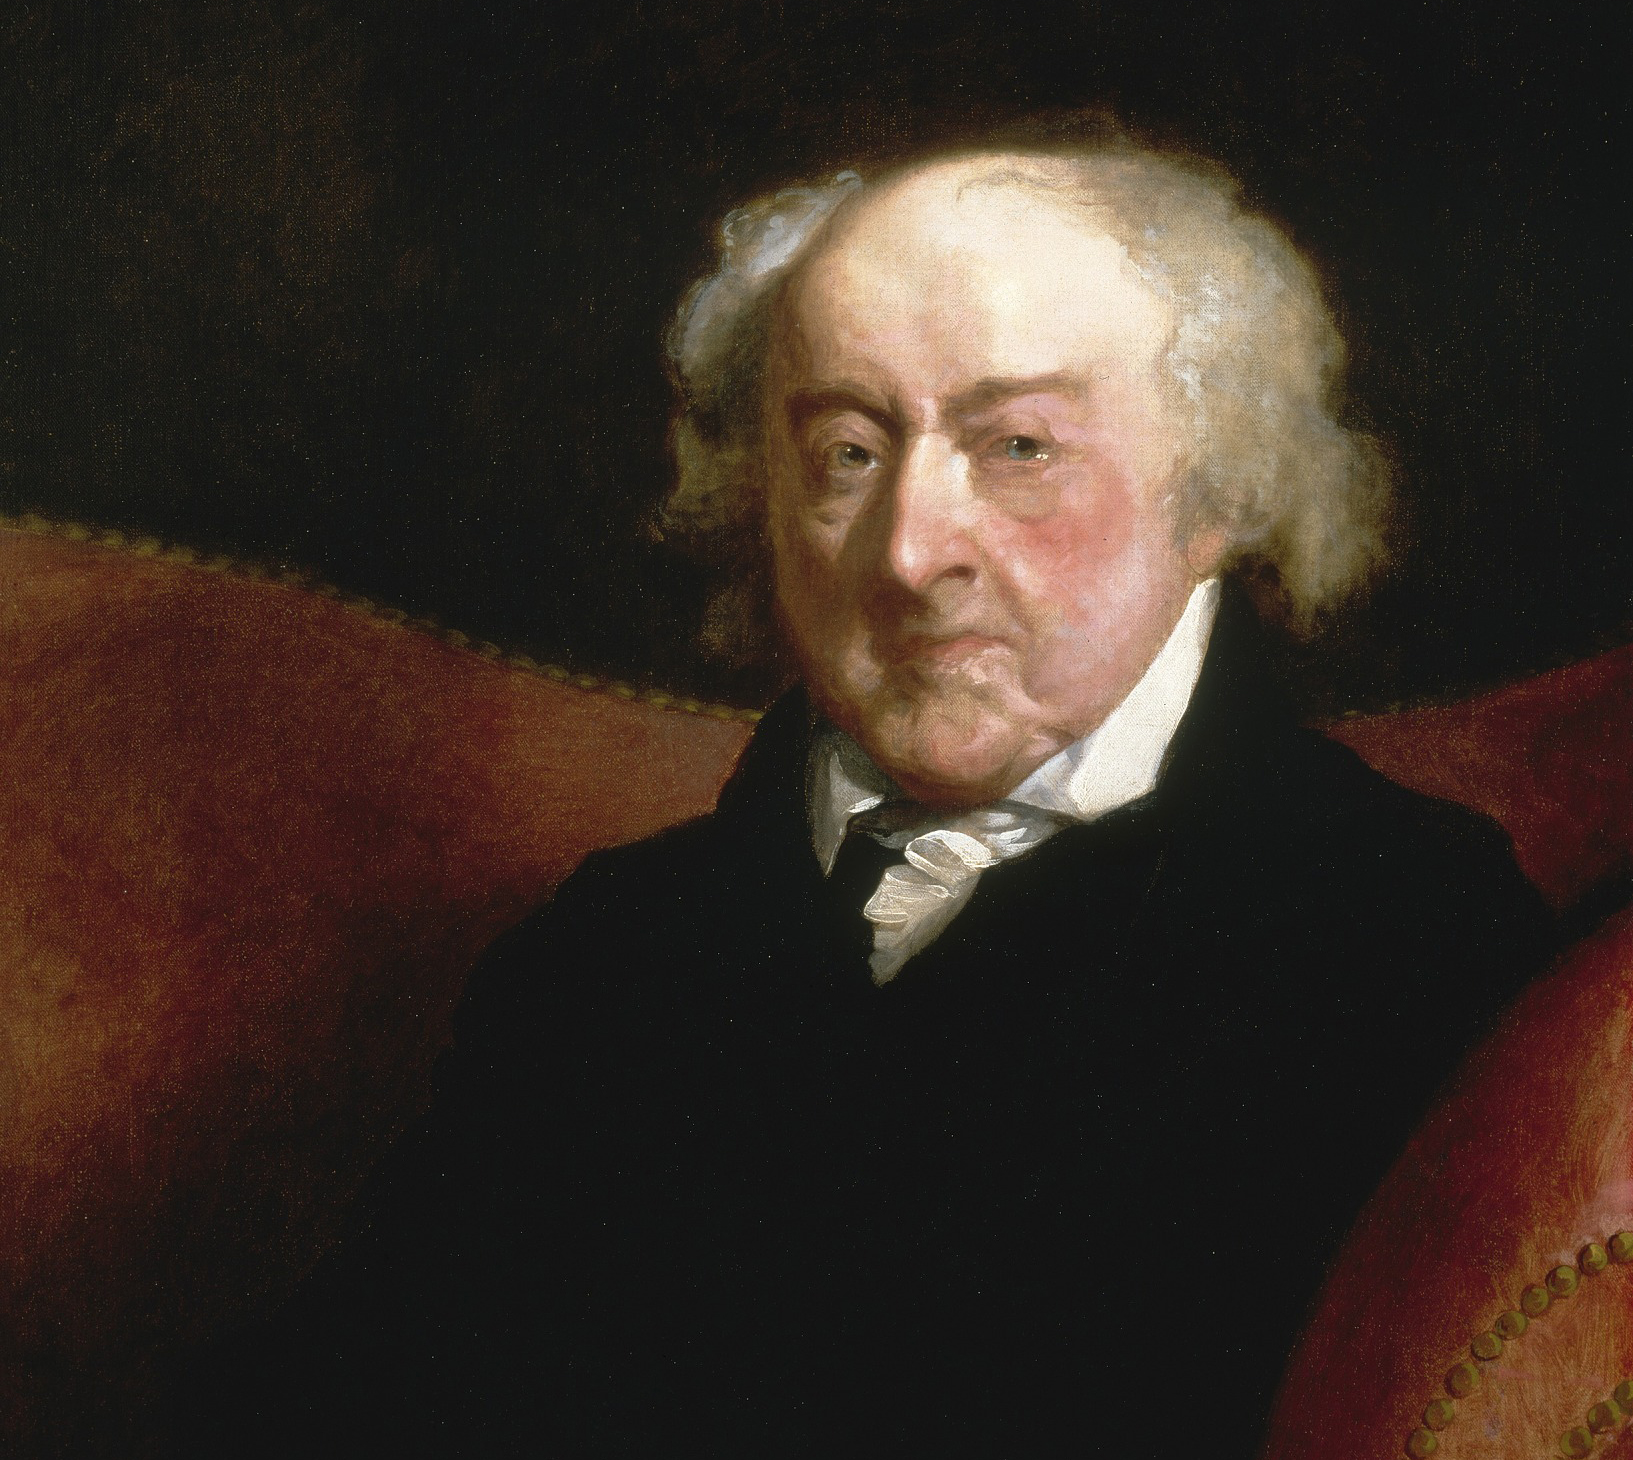 President John Adams visit Alexandria for the first time